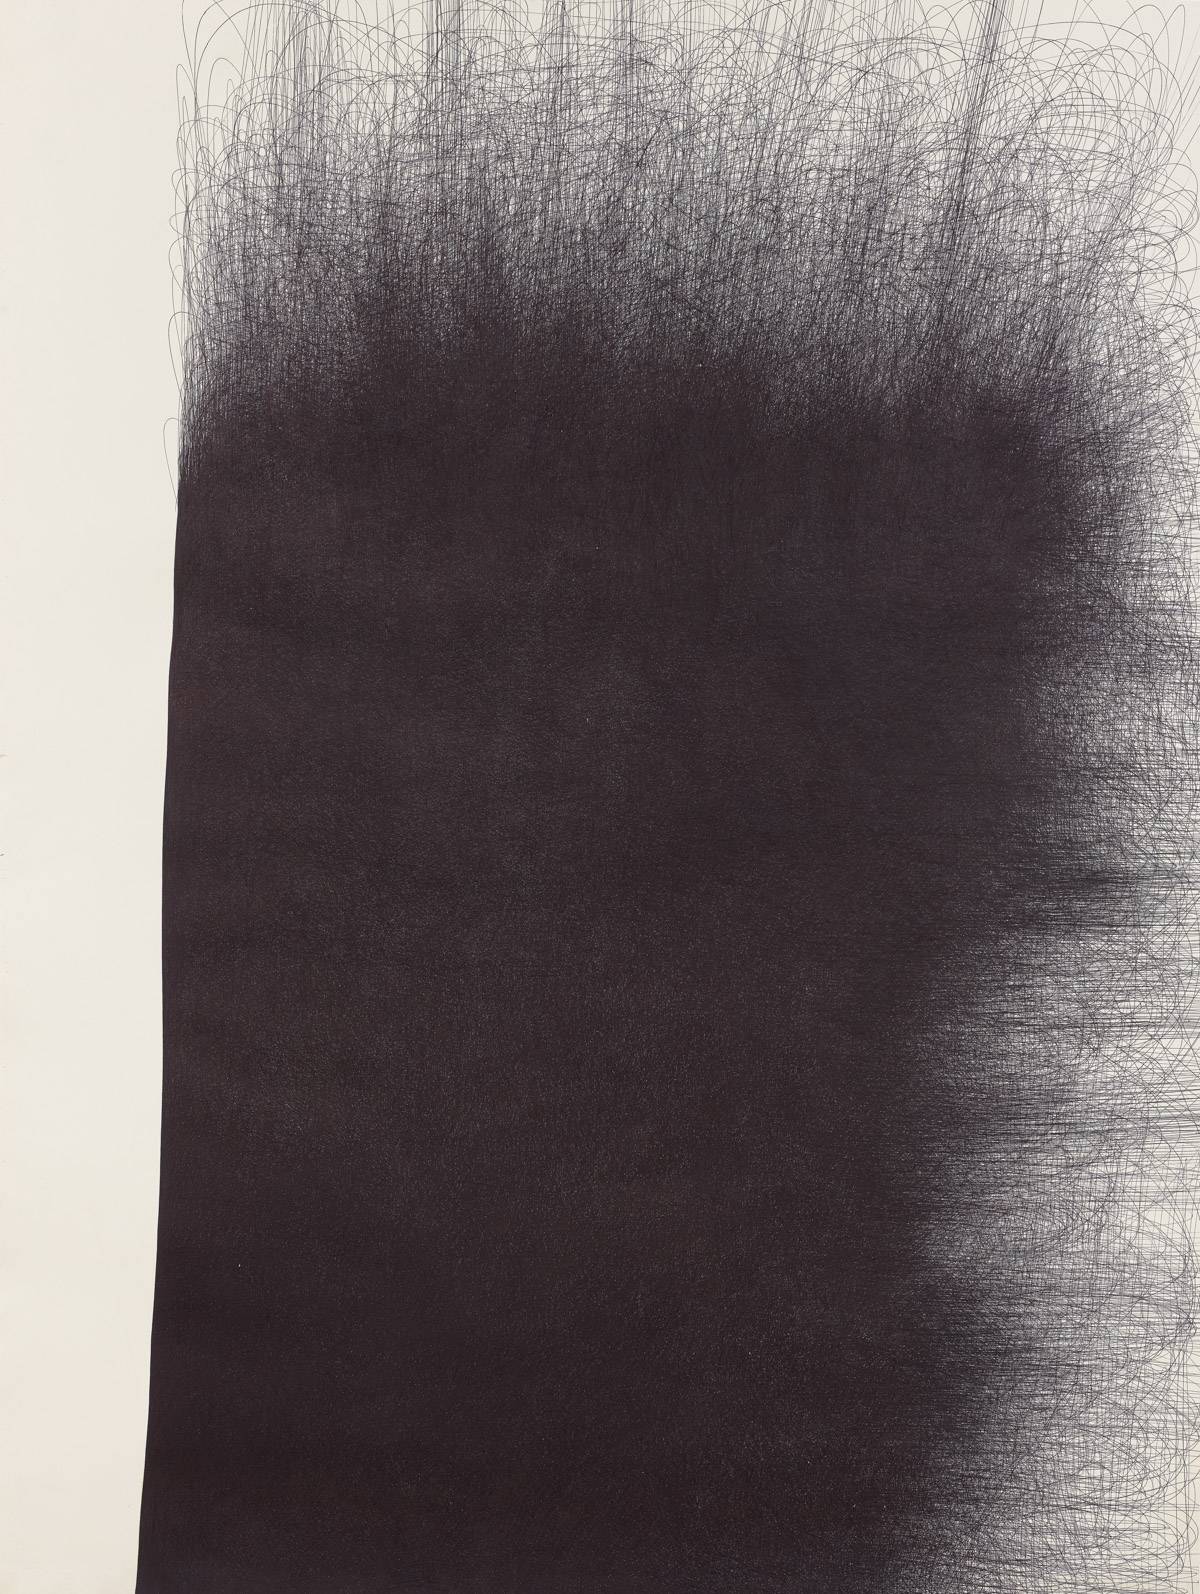 IL LEE, Untitled 978 F, 1997-98, ballpoint ink on paper,80 x 60 inches (203.2 x 152.4 cm)